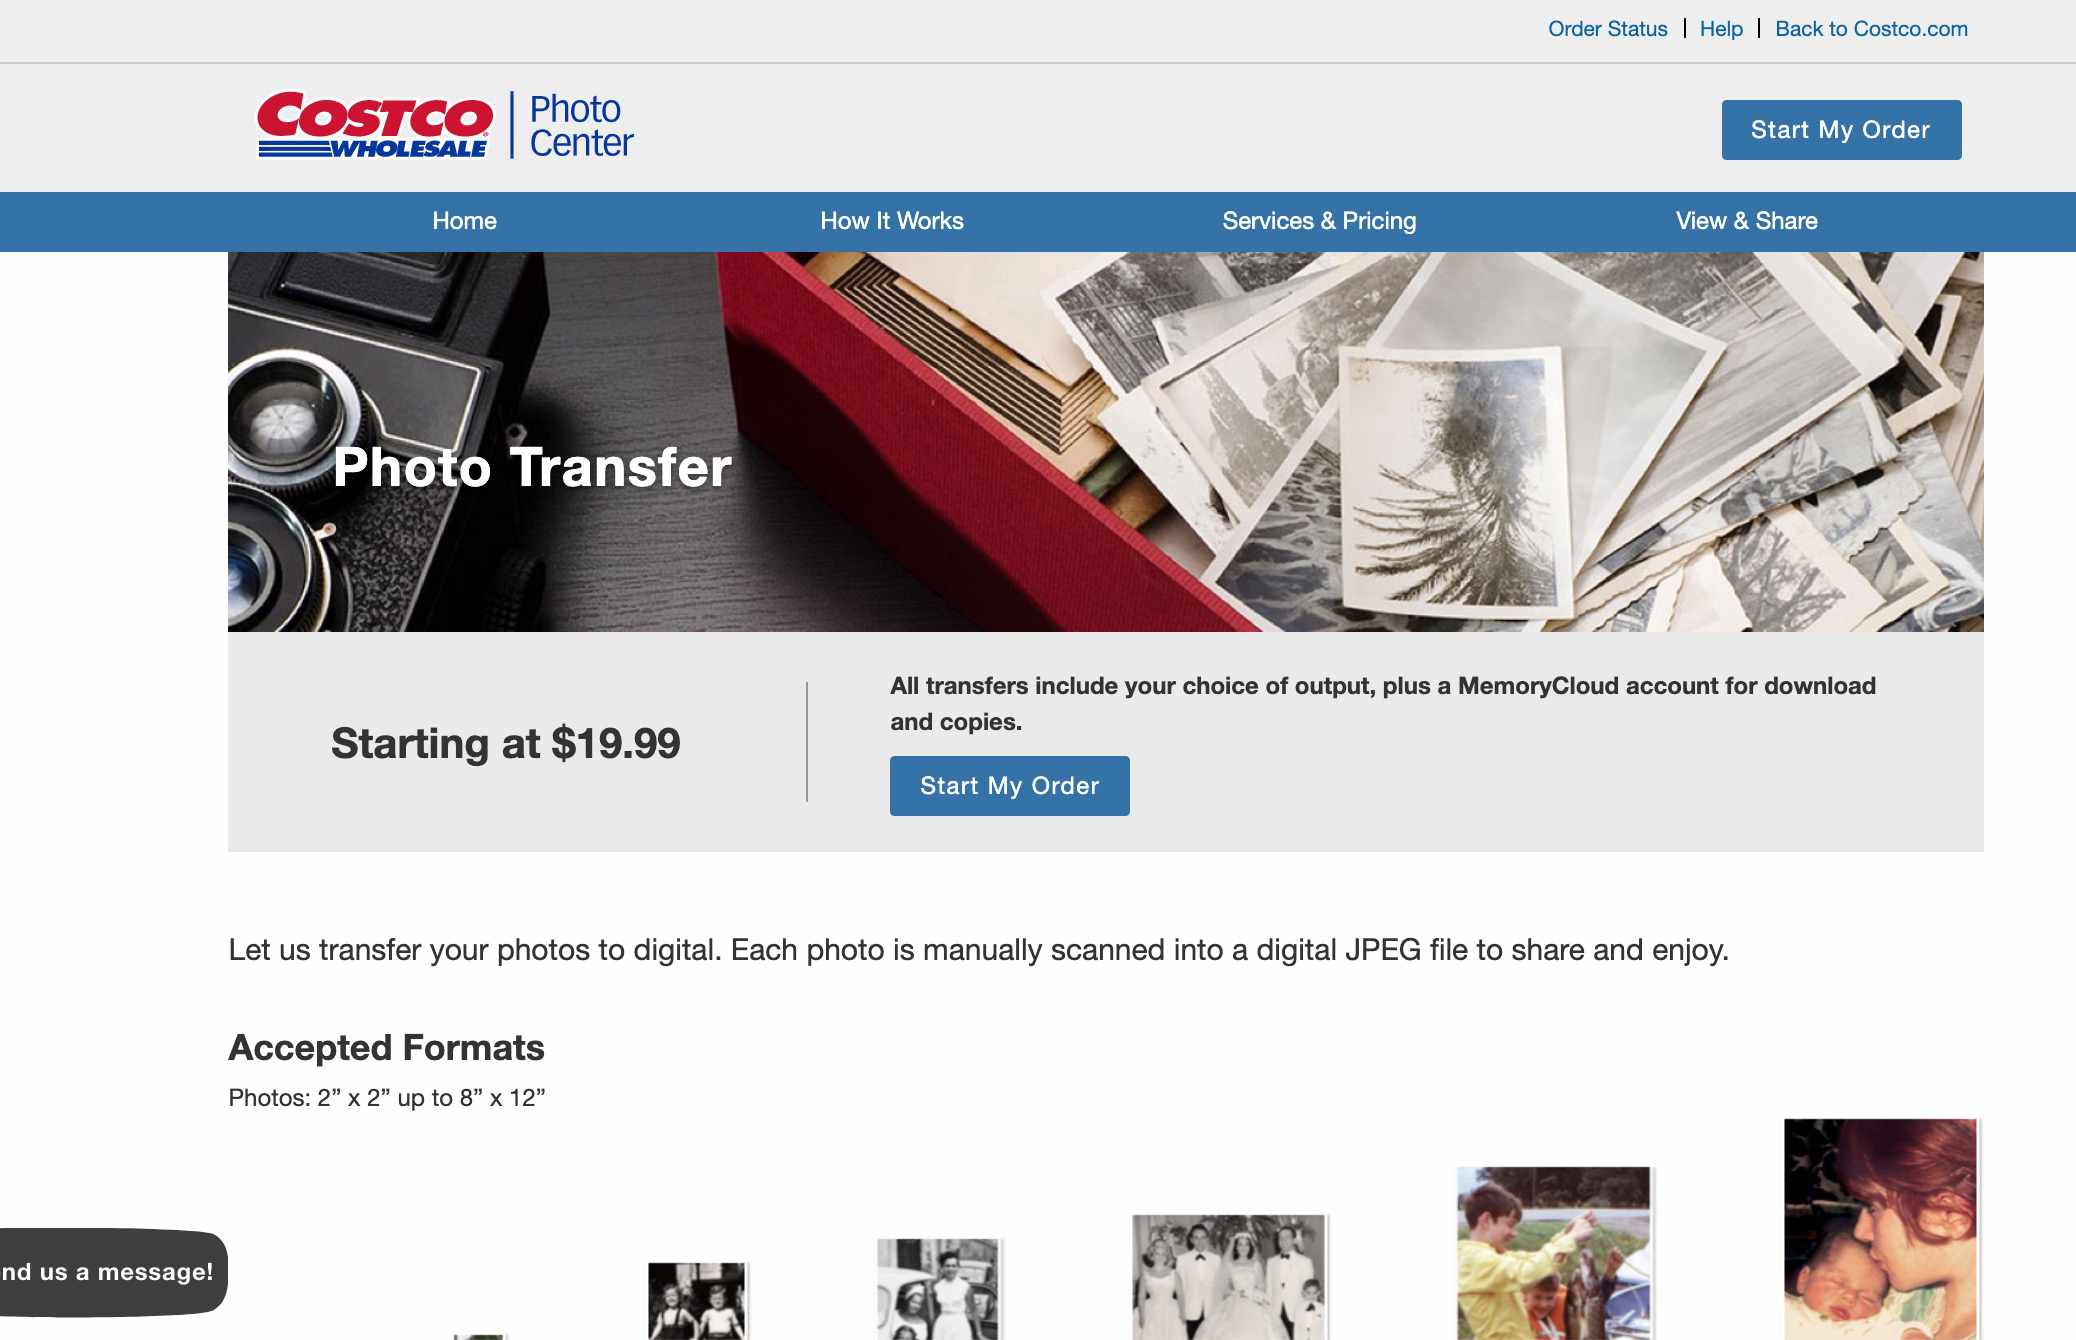 Costco's photo-scanning services